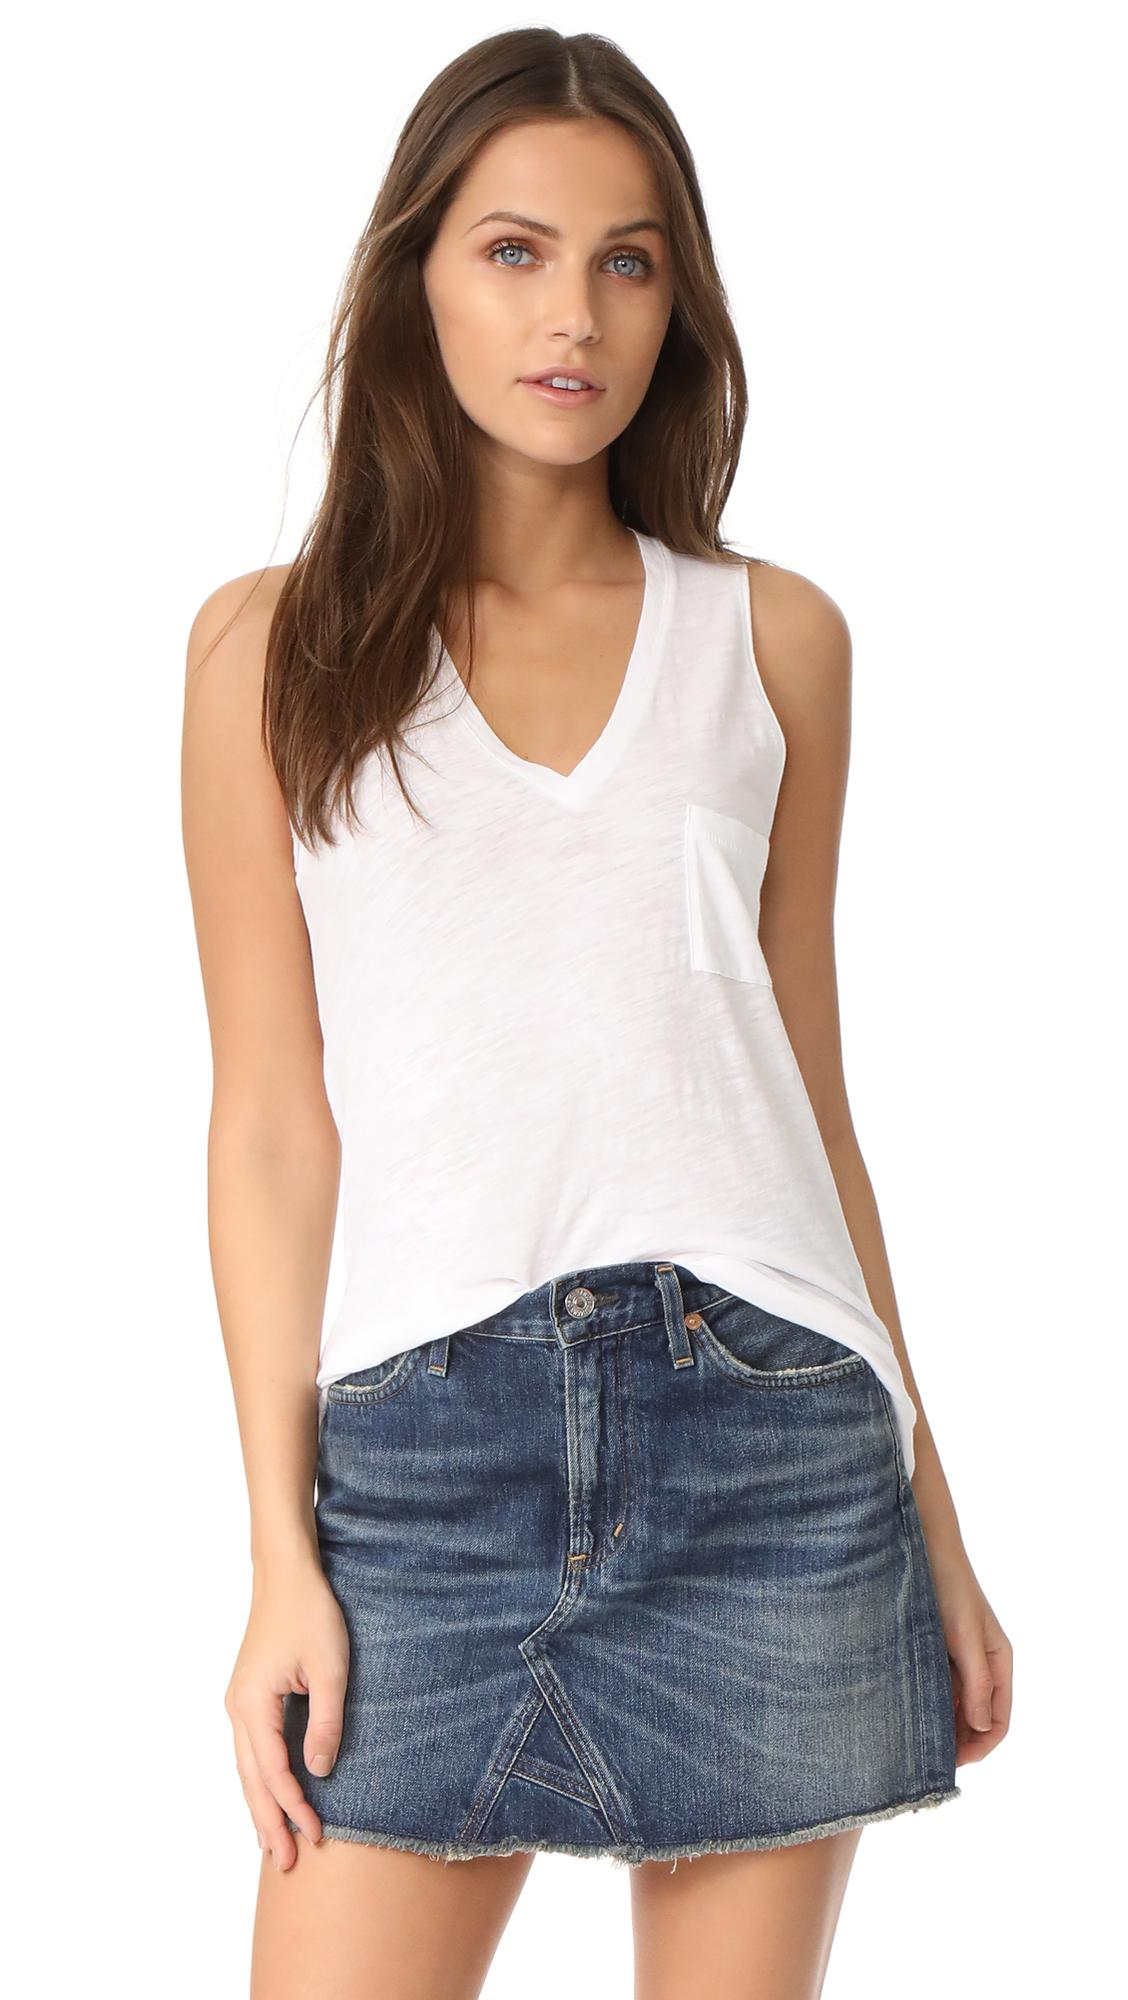 bdff374ff3599 A feather-light Madewell tank top in slubbed jersey. Patch front pocket. V  neckline. Fabric  Slubbed jersey. 100% cotton. Wash cold. Imported